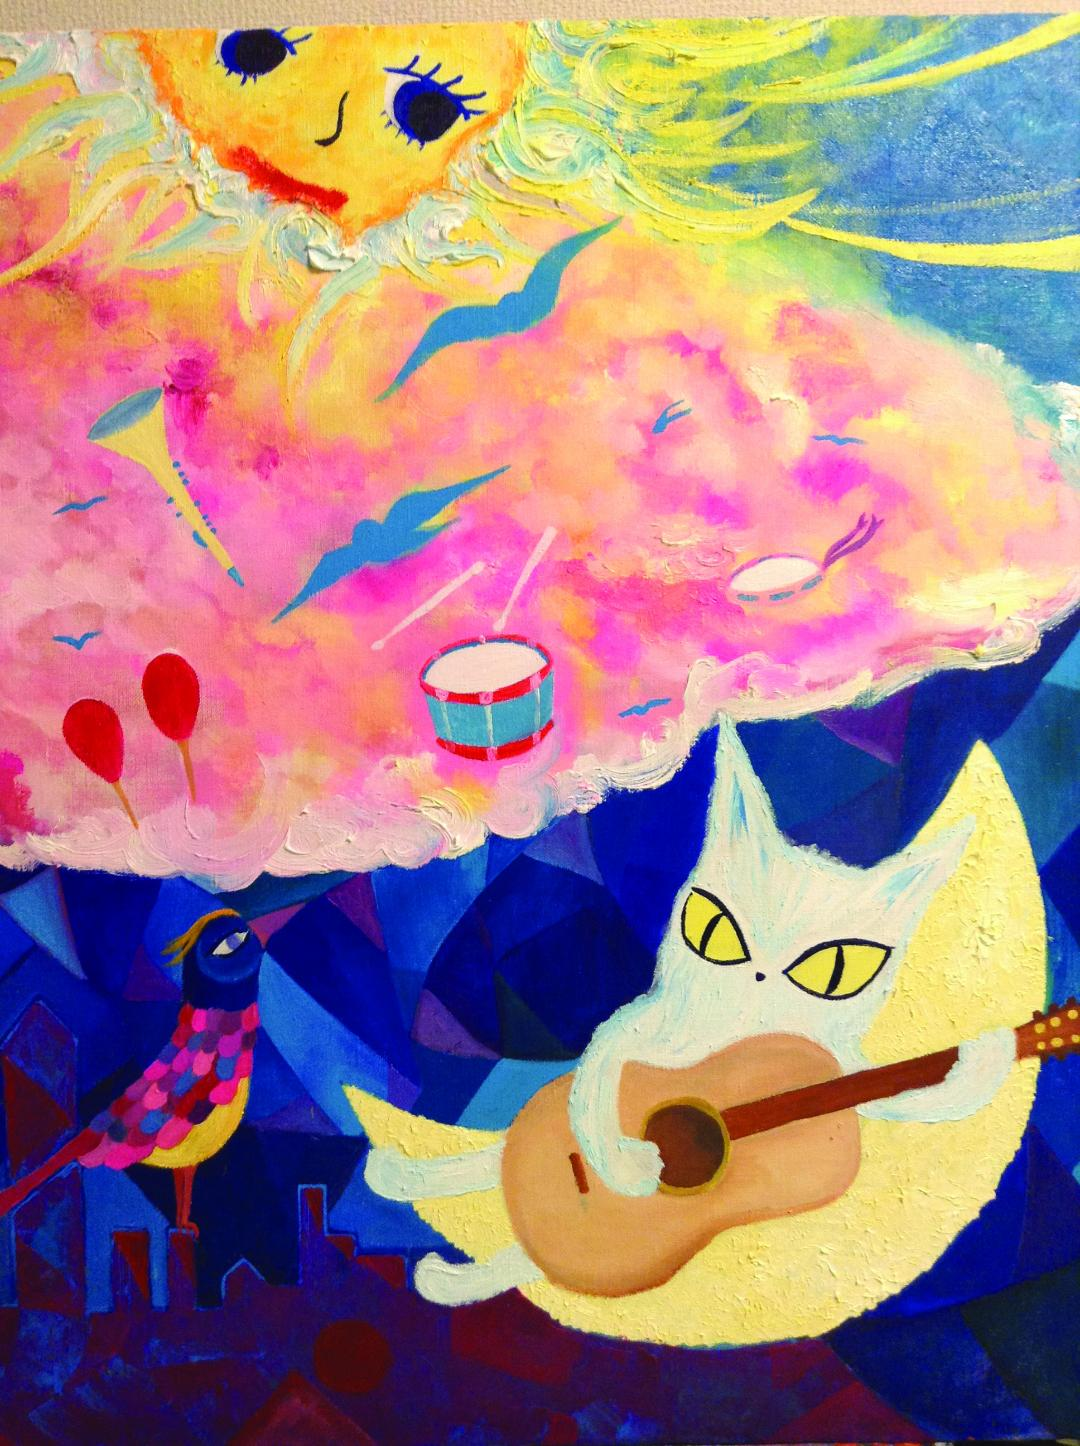 Abstract painting with a cat playing guitar, bird on the foreground. Sun on the upper left corner with pink and yellow clouds, in a blue background.